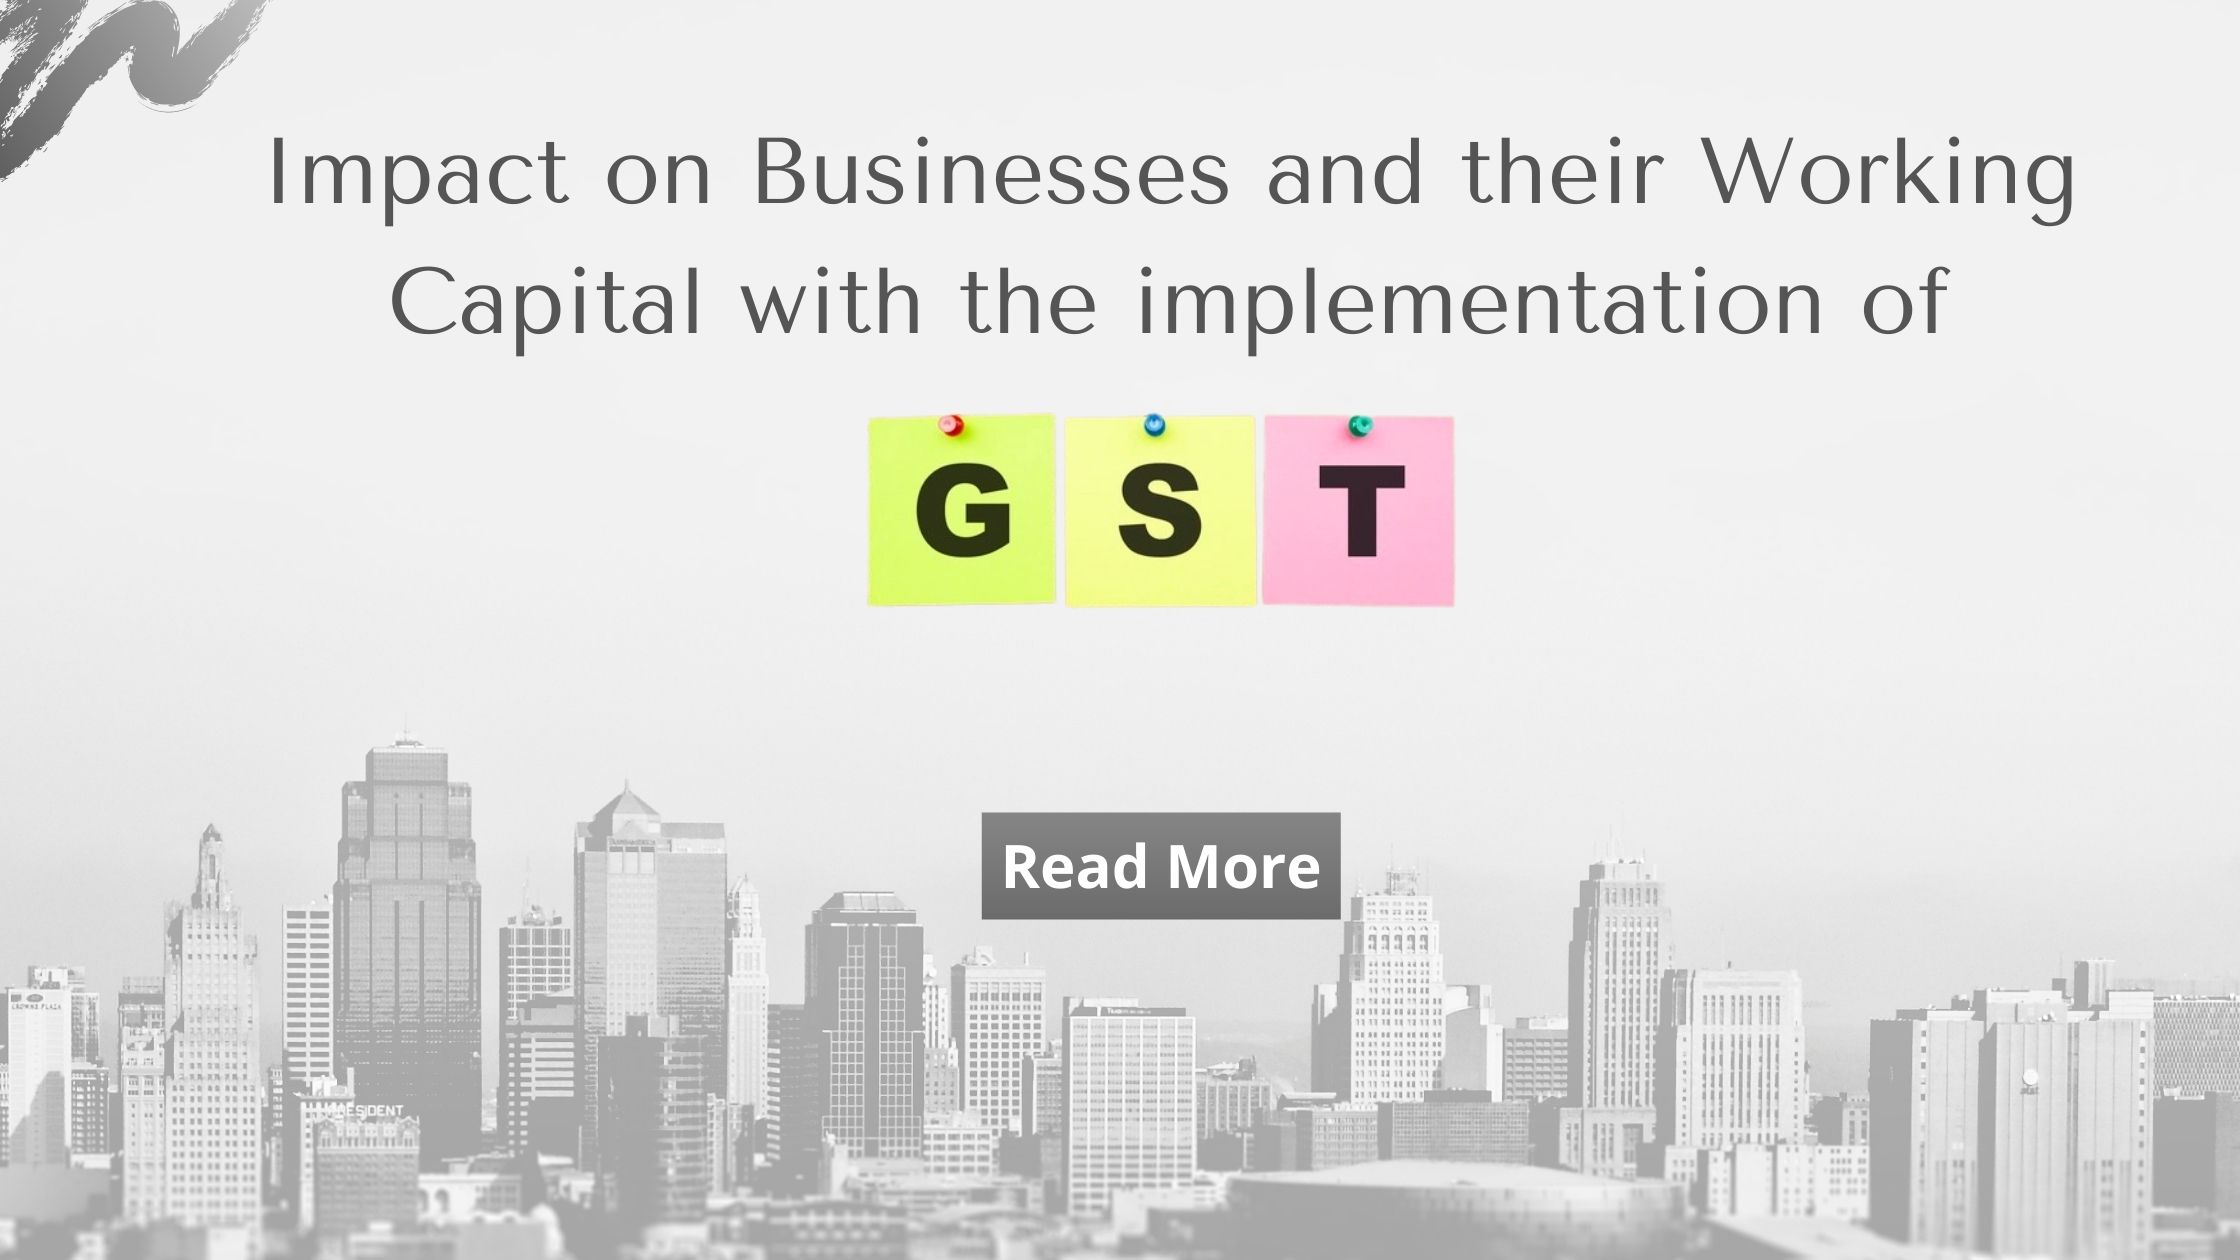 Impact on Businesses and their Working Capital with the implementation of GST